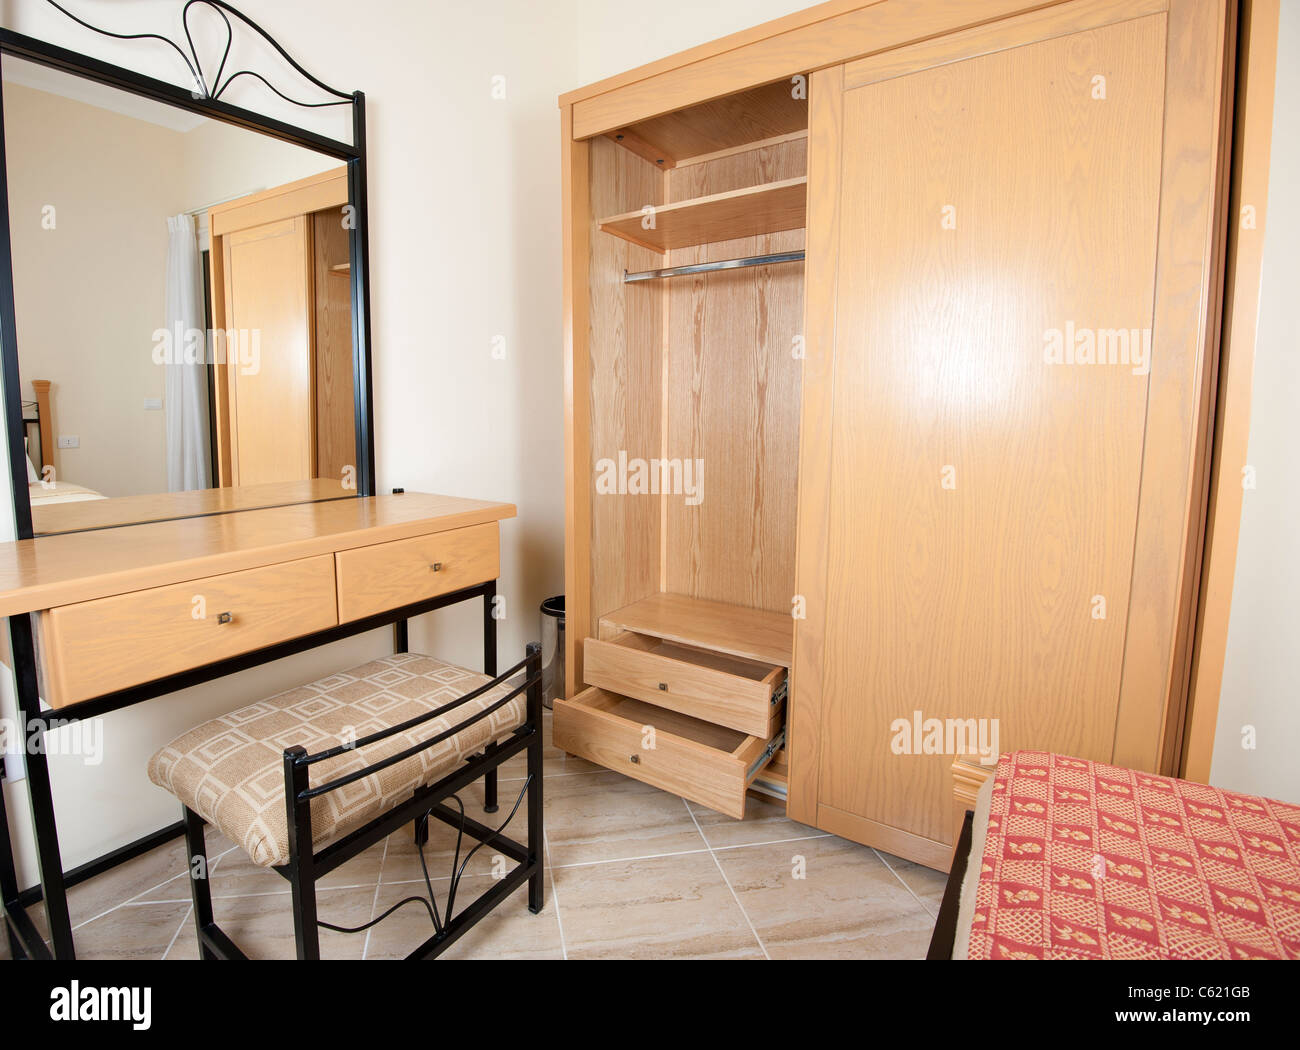 Bedroom dressing table with mirror - Interior Design Dressing Table With Mirror And Wardrobe In A Bedroom